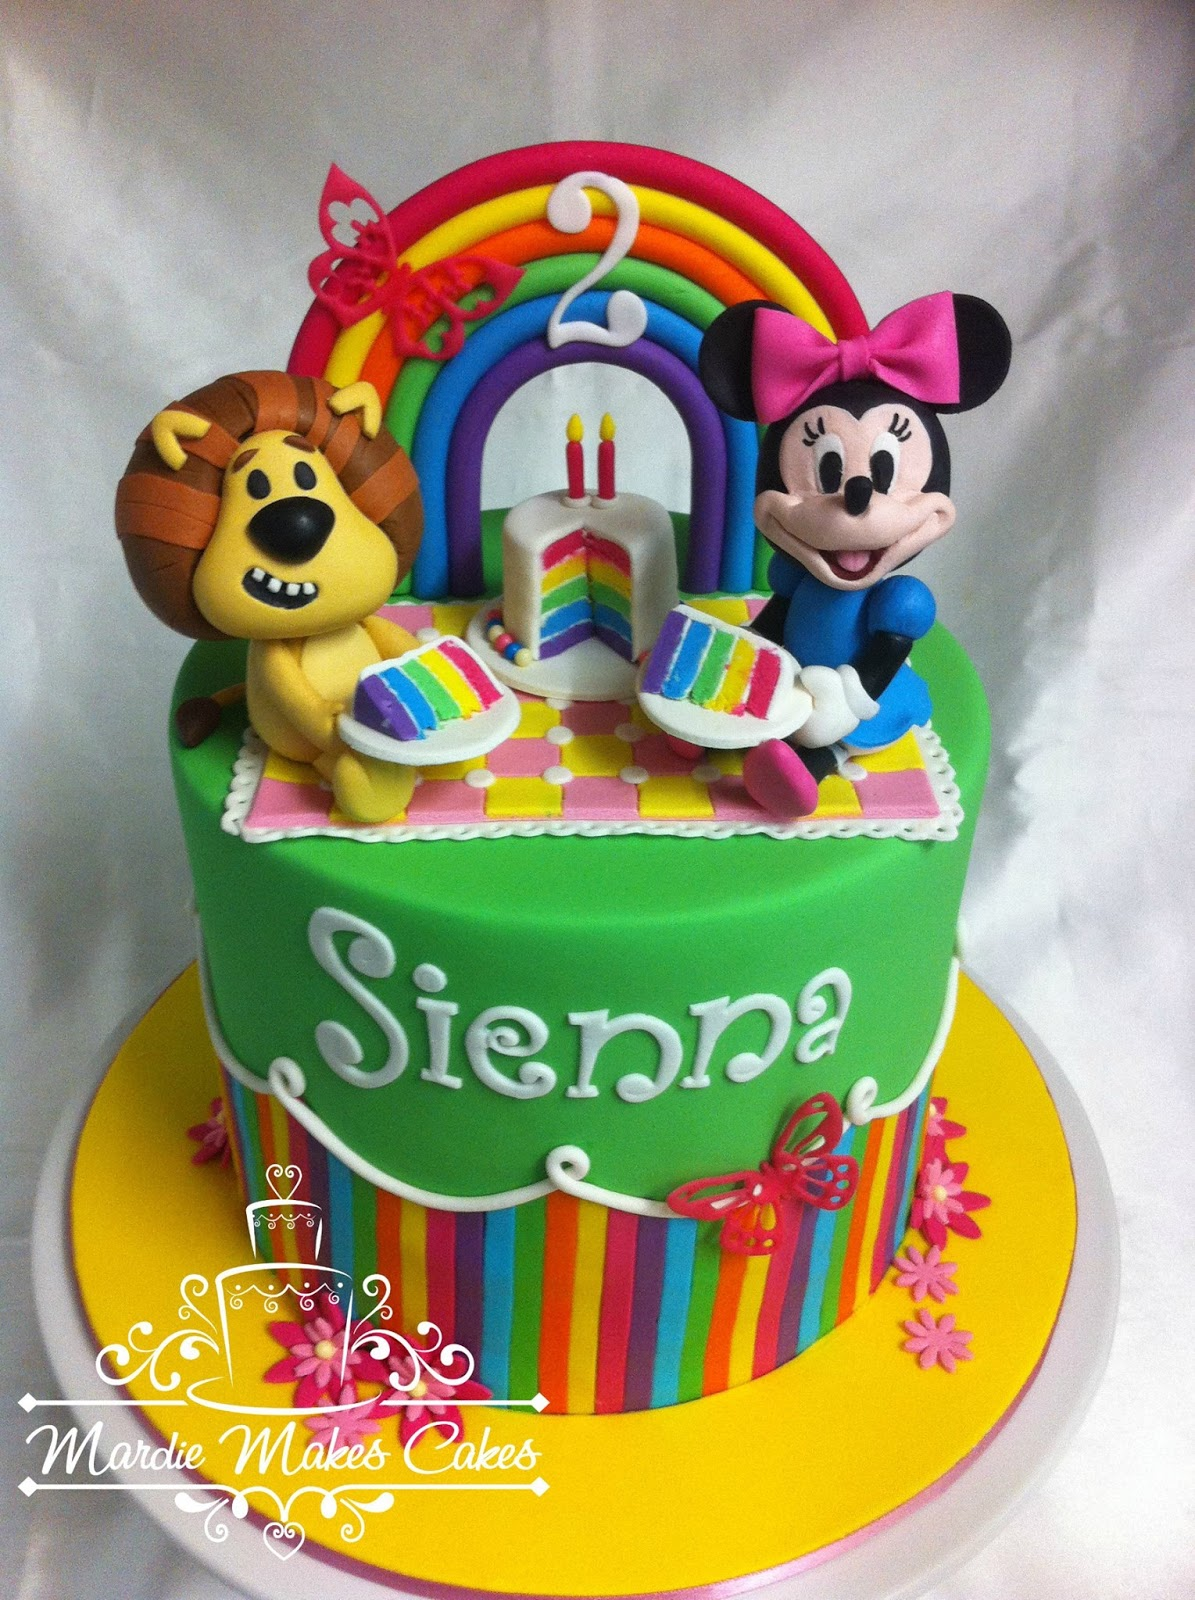 Mardie makes Cakes Rara Lion Minnie Mouse Rainbow Fondant Cake